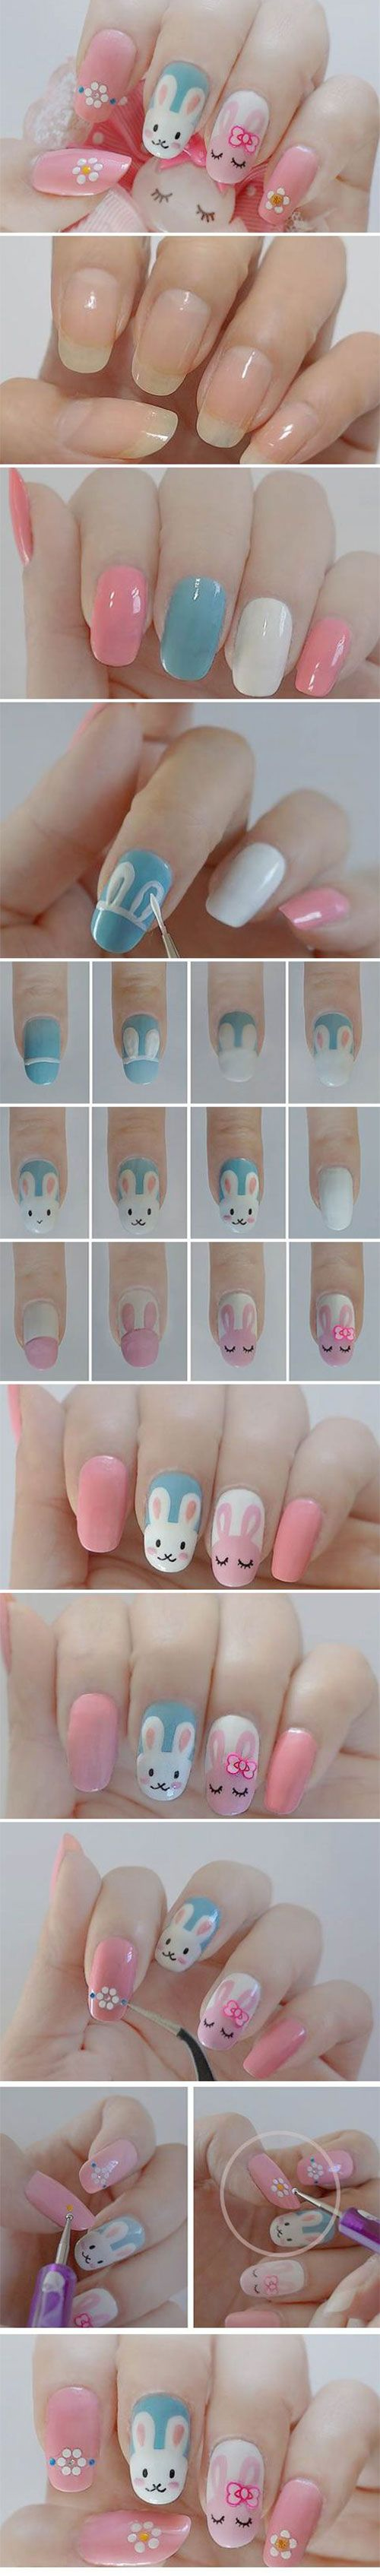 10 Step By Step Easter Nail Art Tutorials For Beginners & Learners 2015